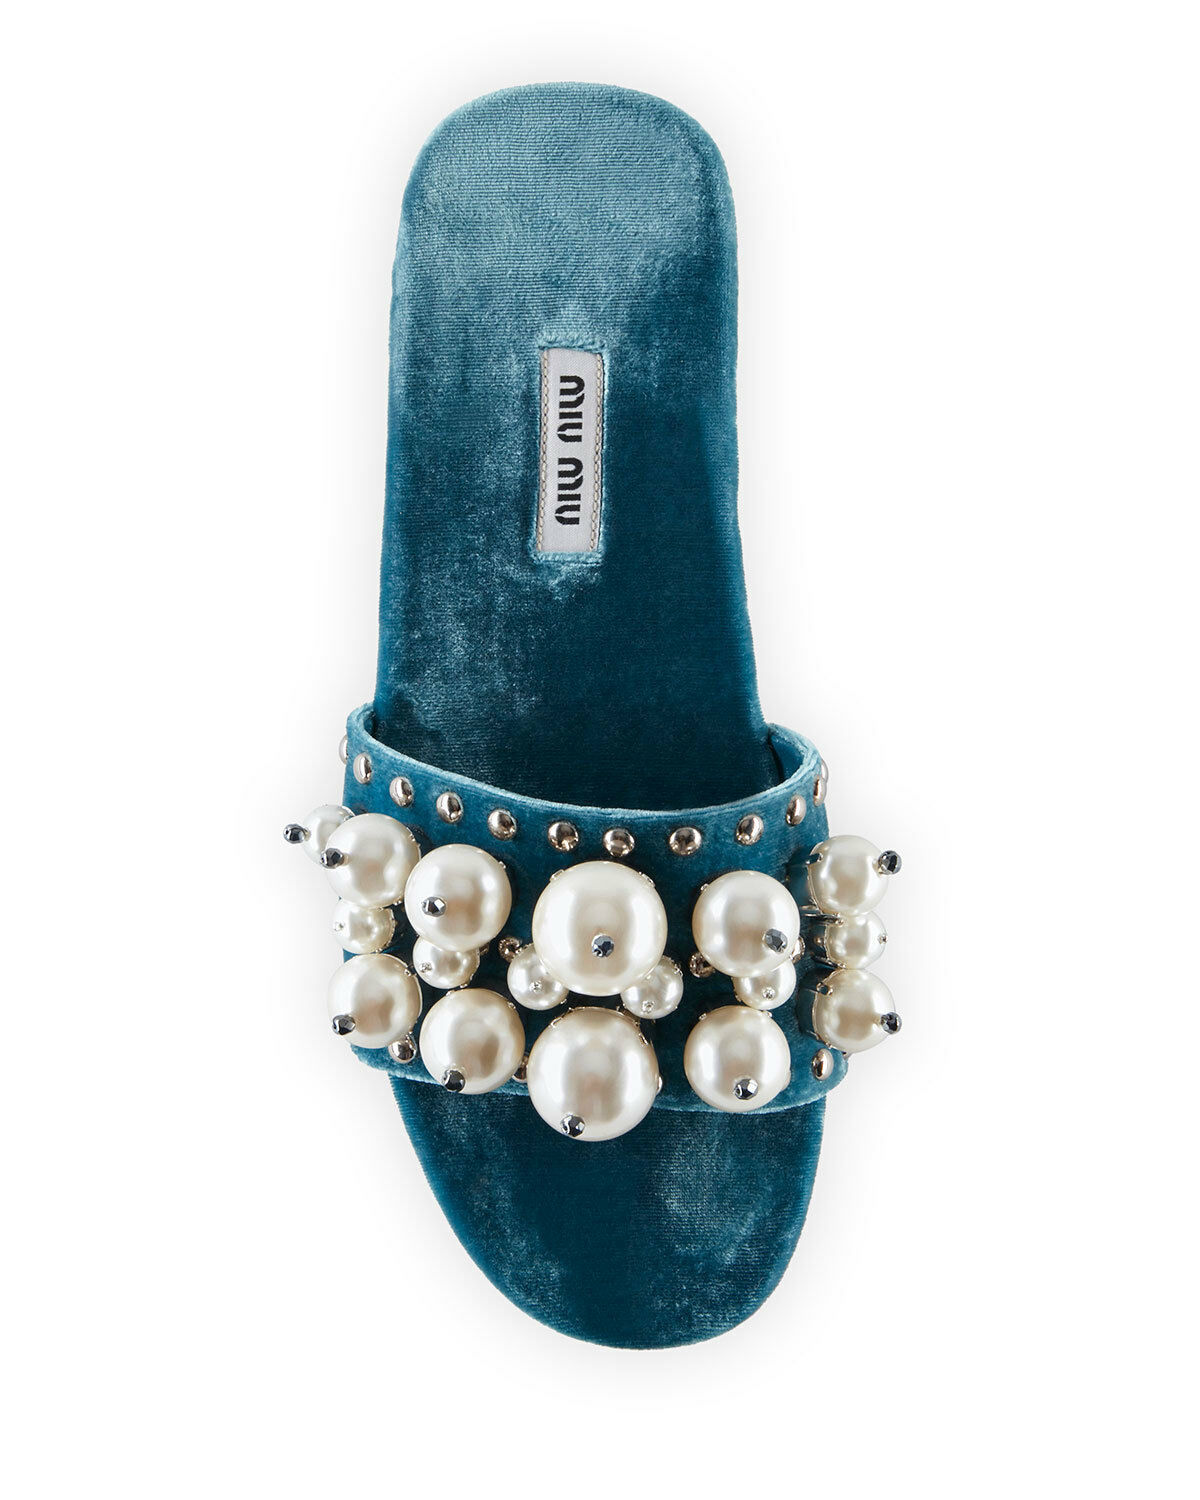 Miu Miu Pearly Velvet Slide Sandals Size 39.5 MSRP: $775.00